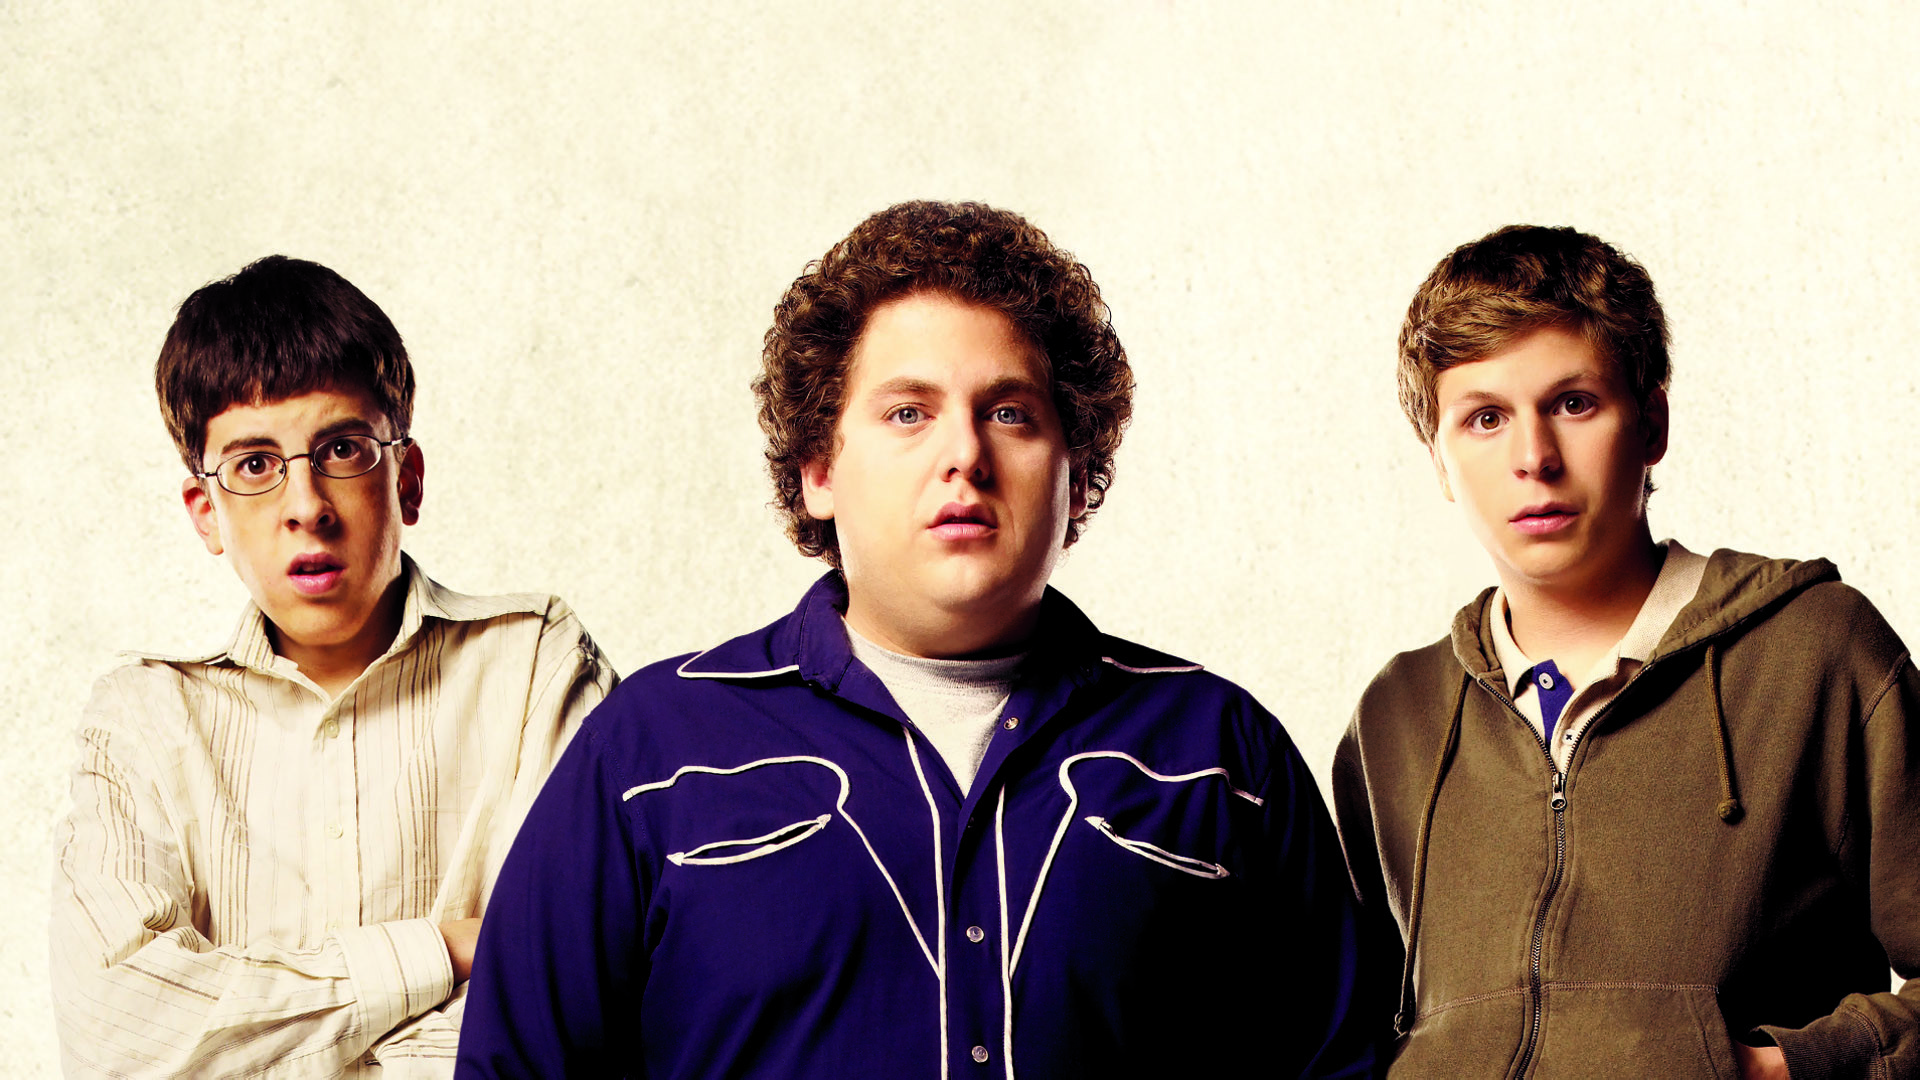 Superbad HD Wallpaper  Background Image  1920x1080  ID